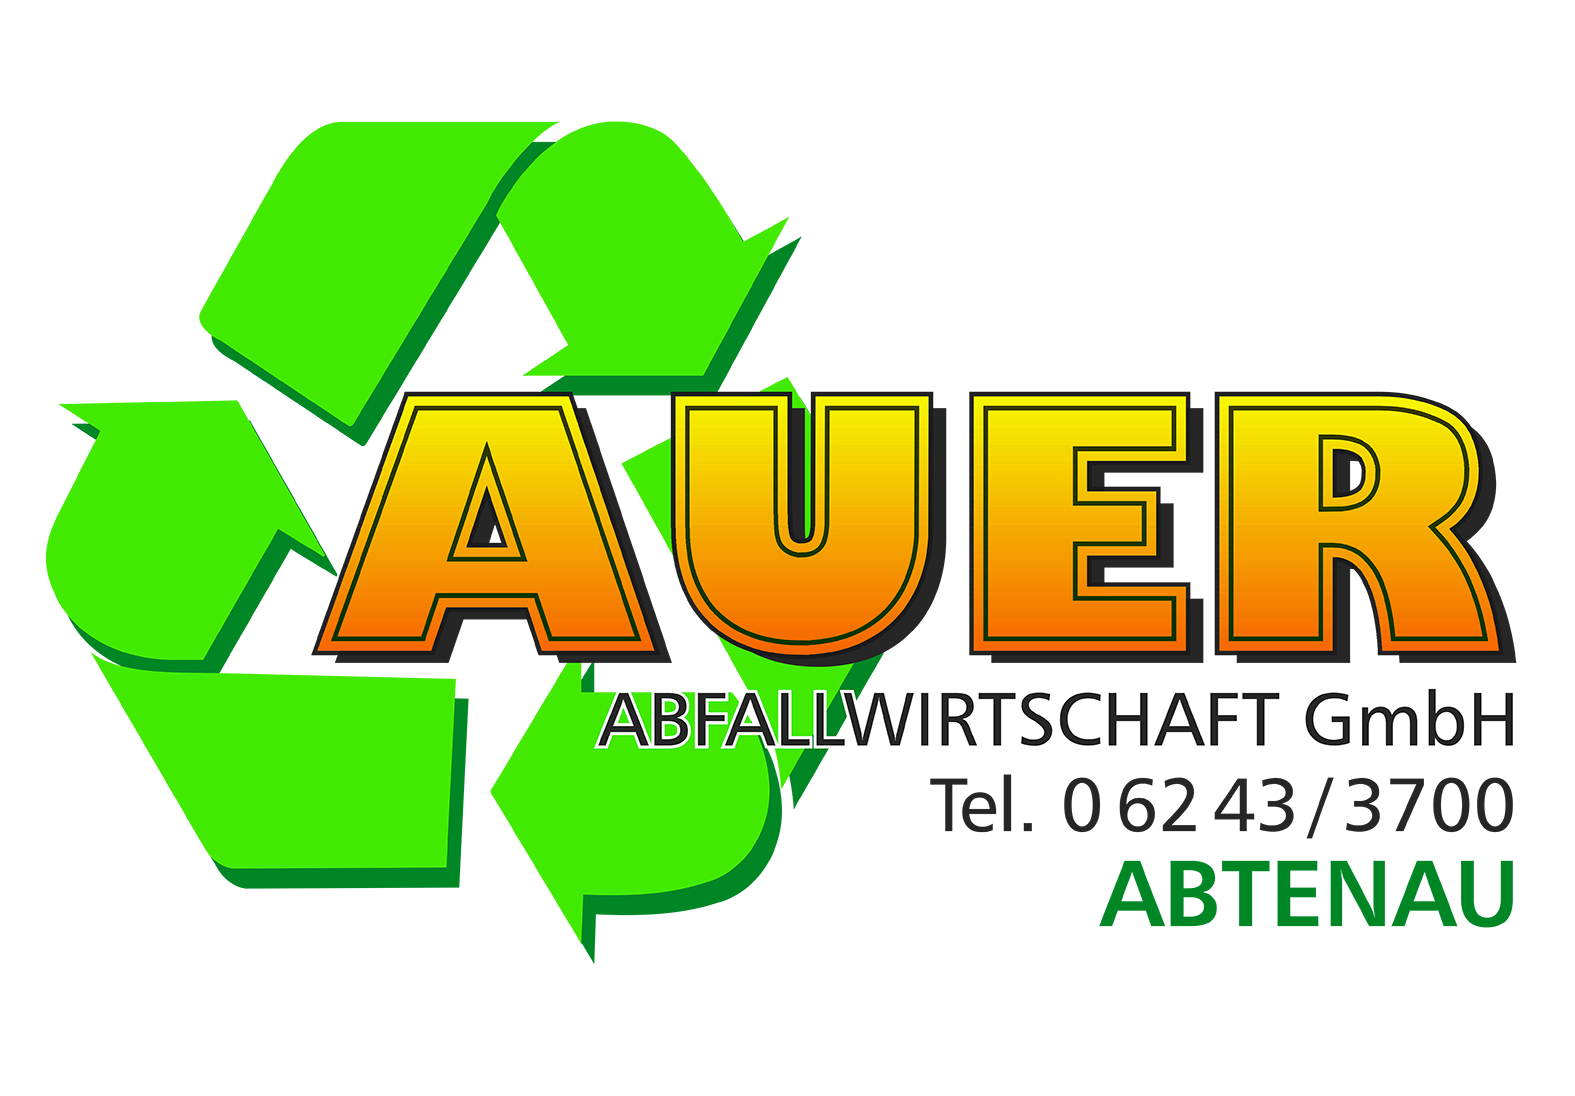 01_Auer.png